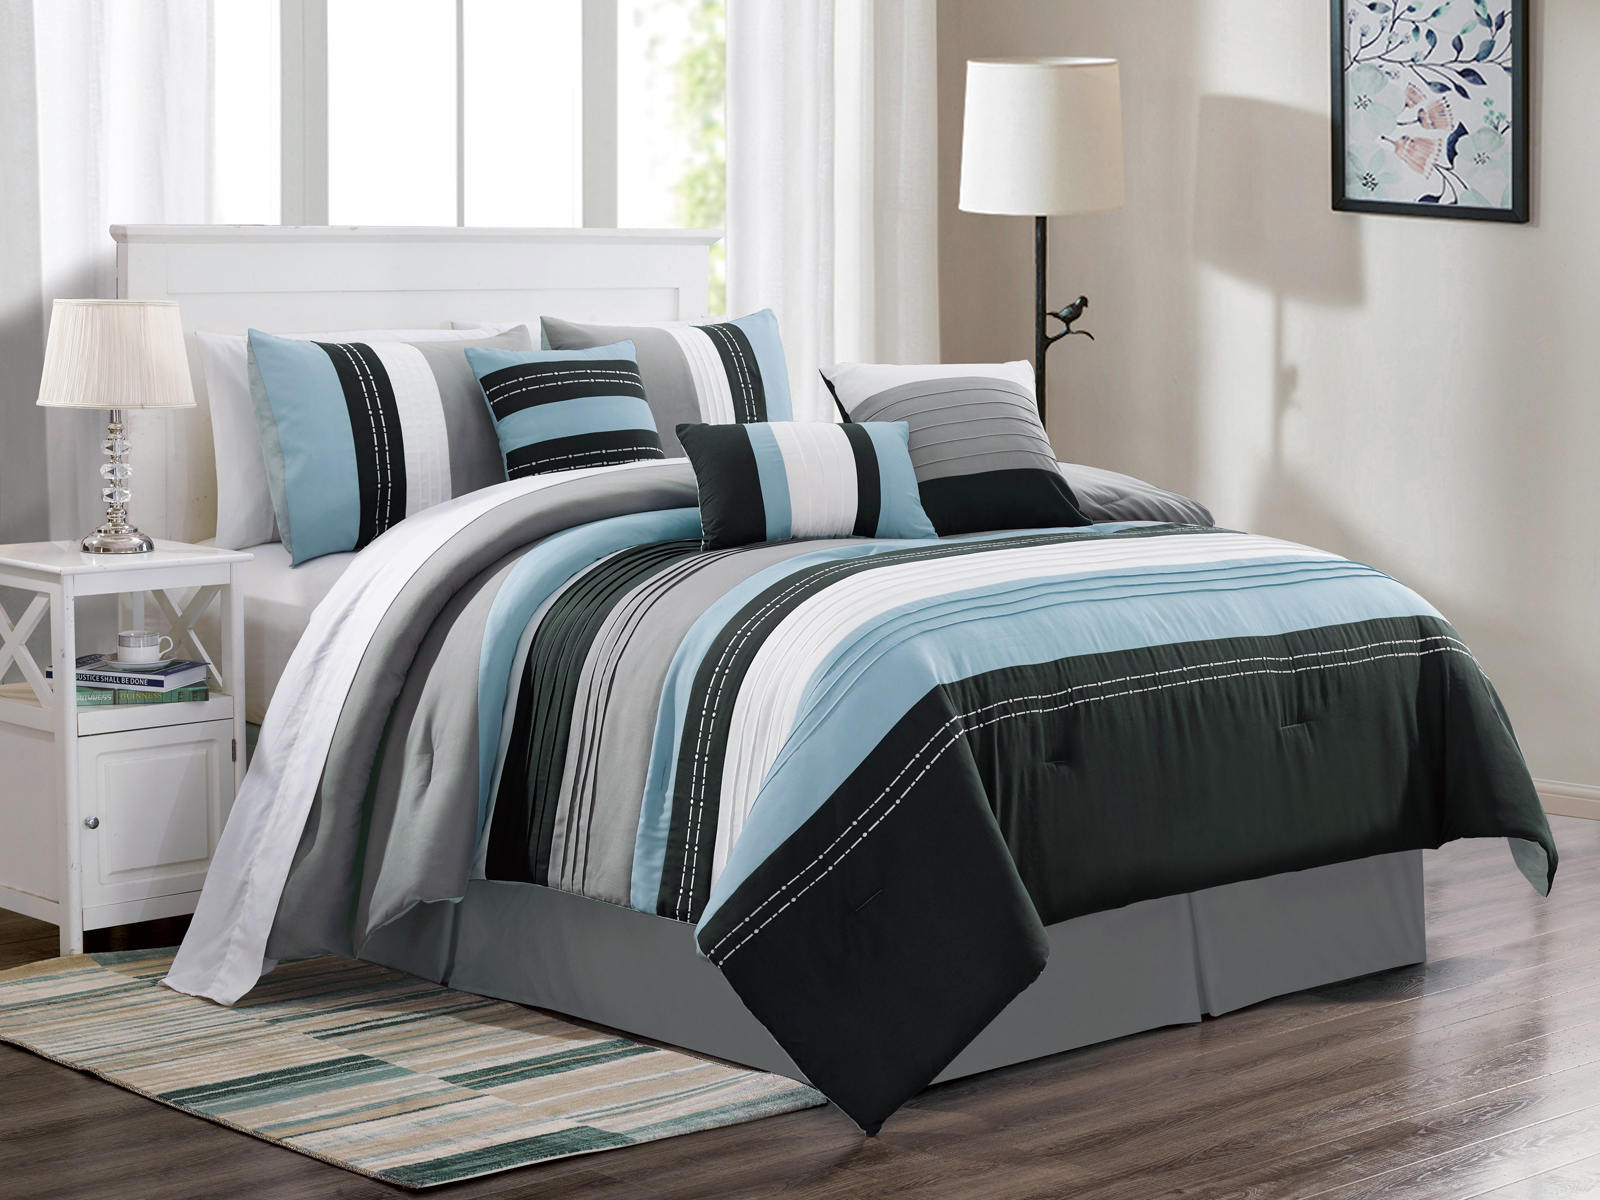 7 Pc Jordan Embroidery Pleated Stripe Comforter Set Blue White Black Gray Queen 655881350913 Ebay